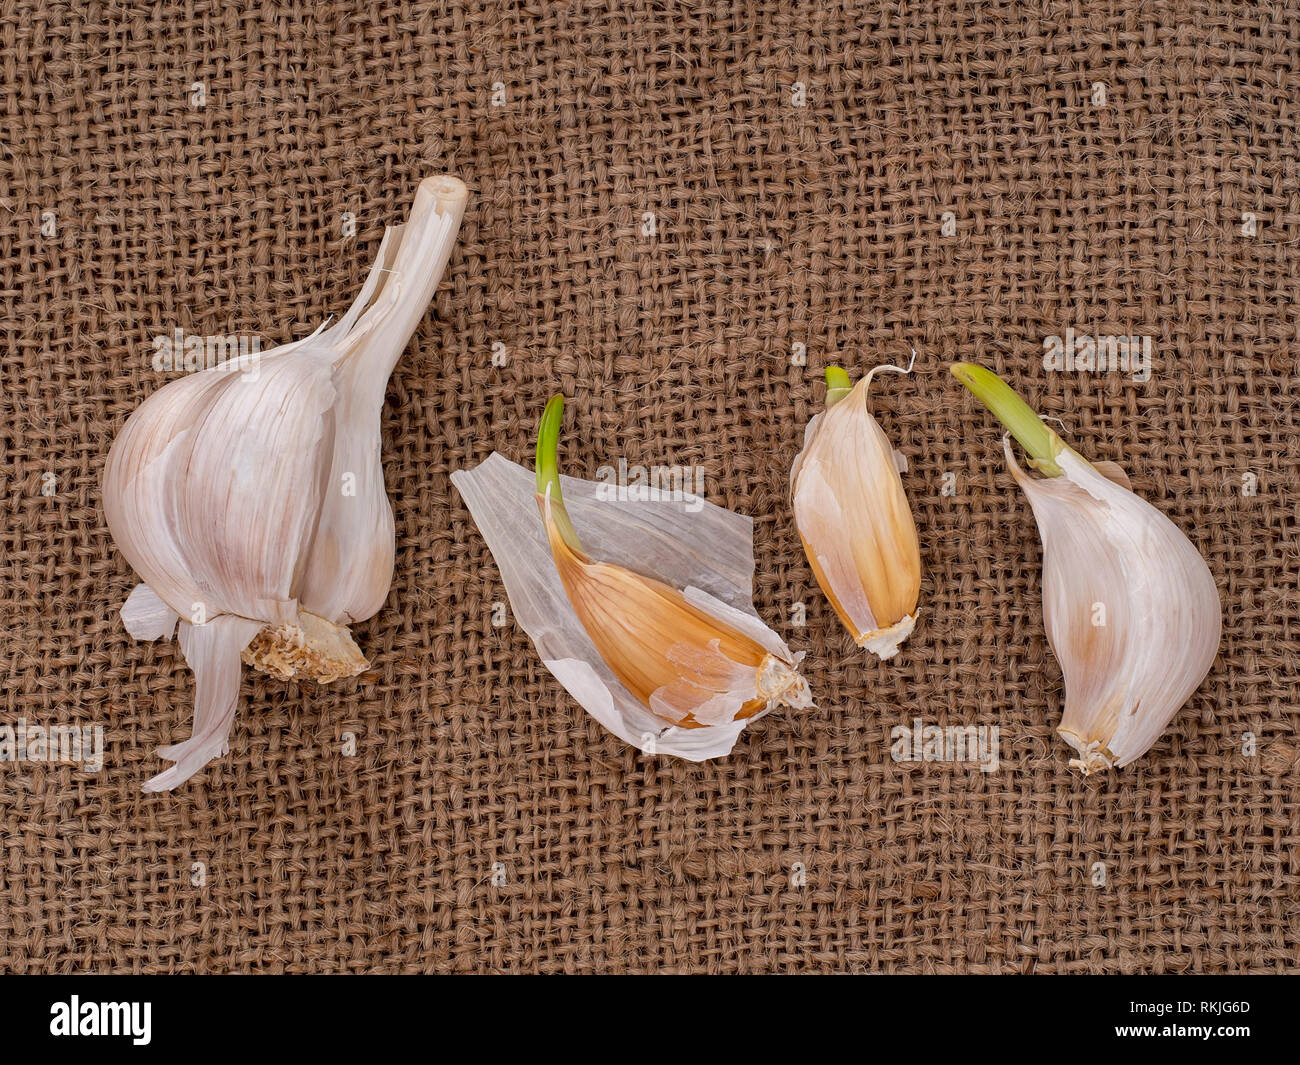 Grow your own garlic, cloves growing on hessian background. Gardening, horticulture. - Stock Image